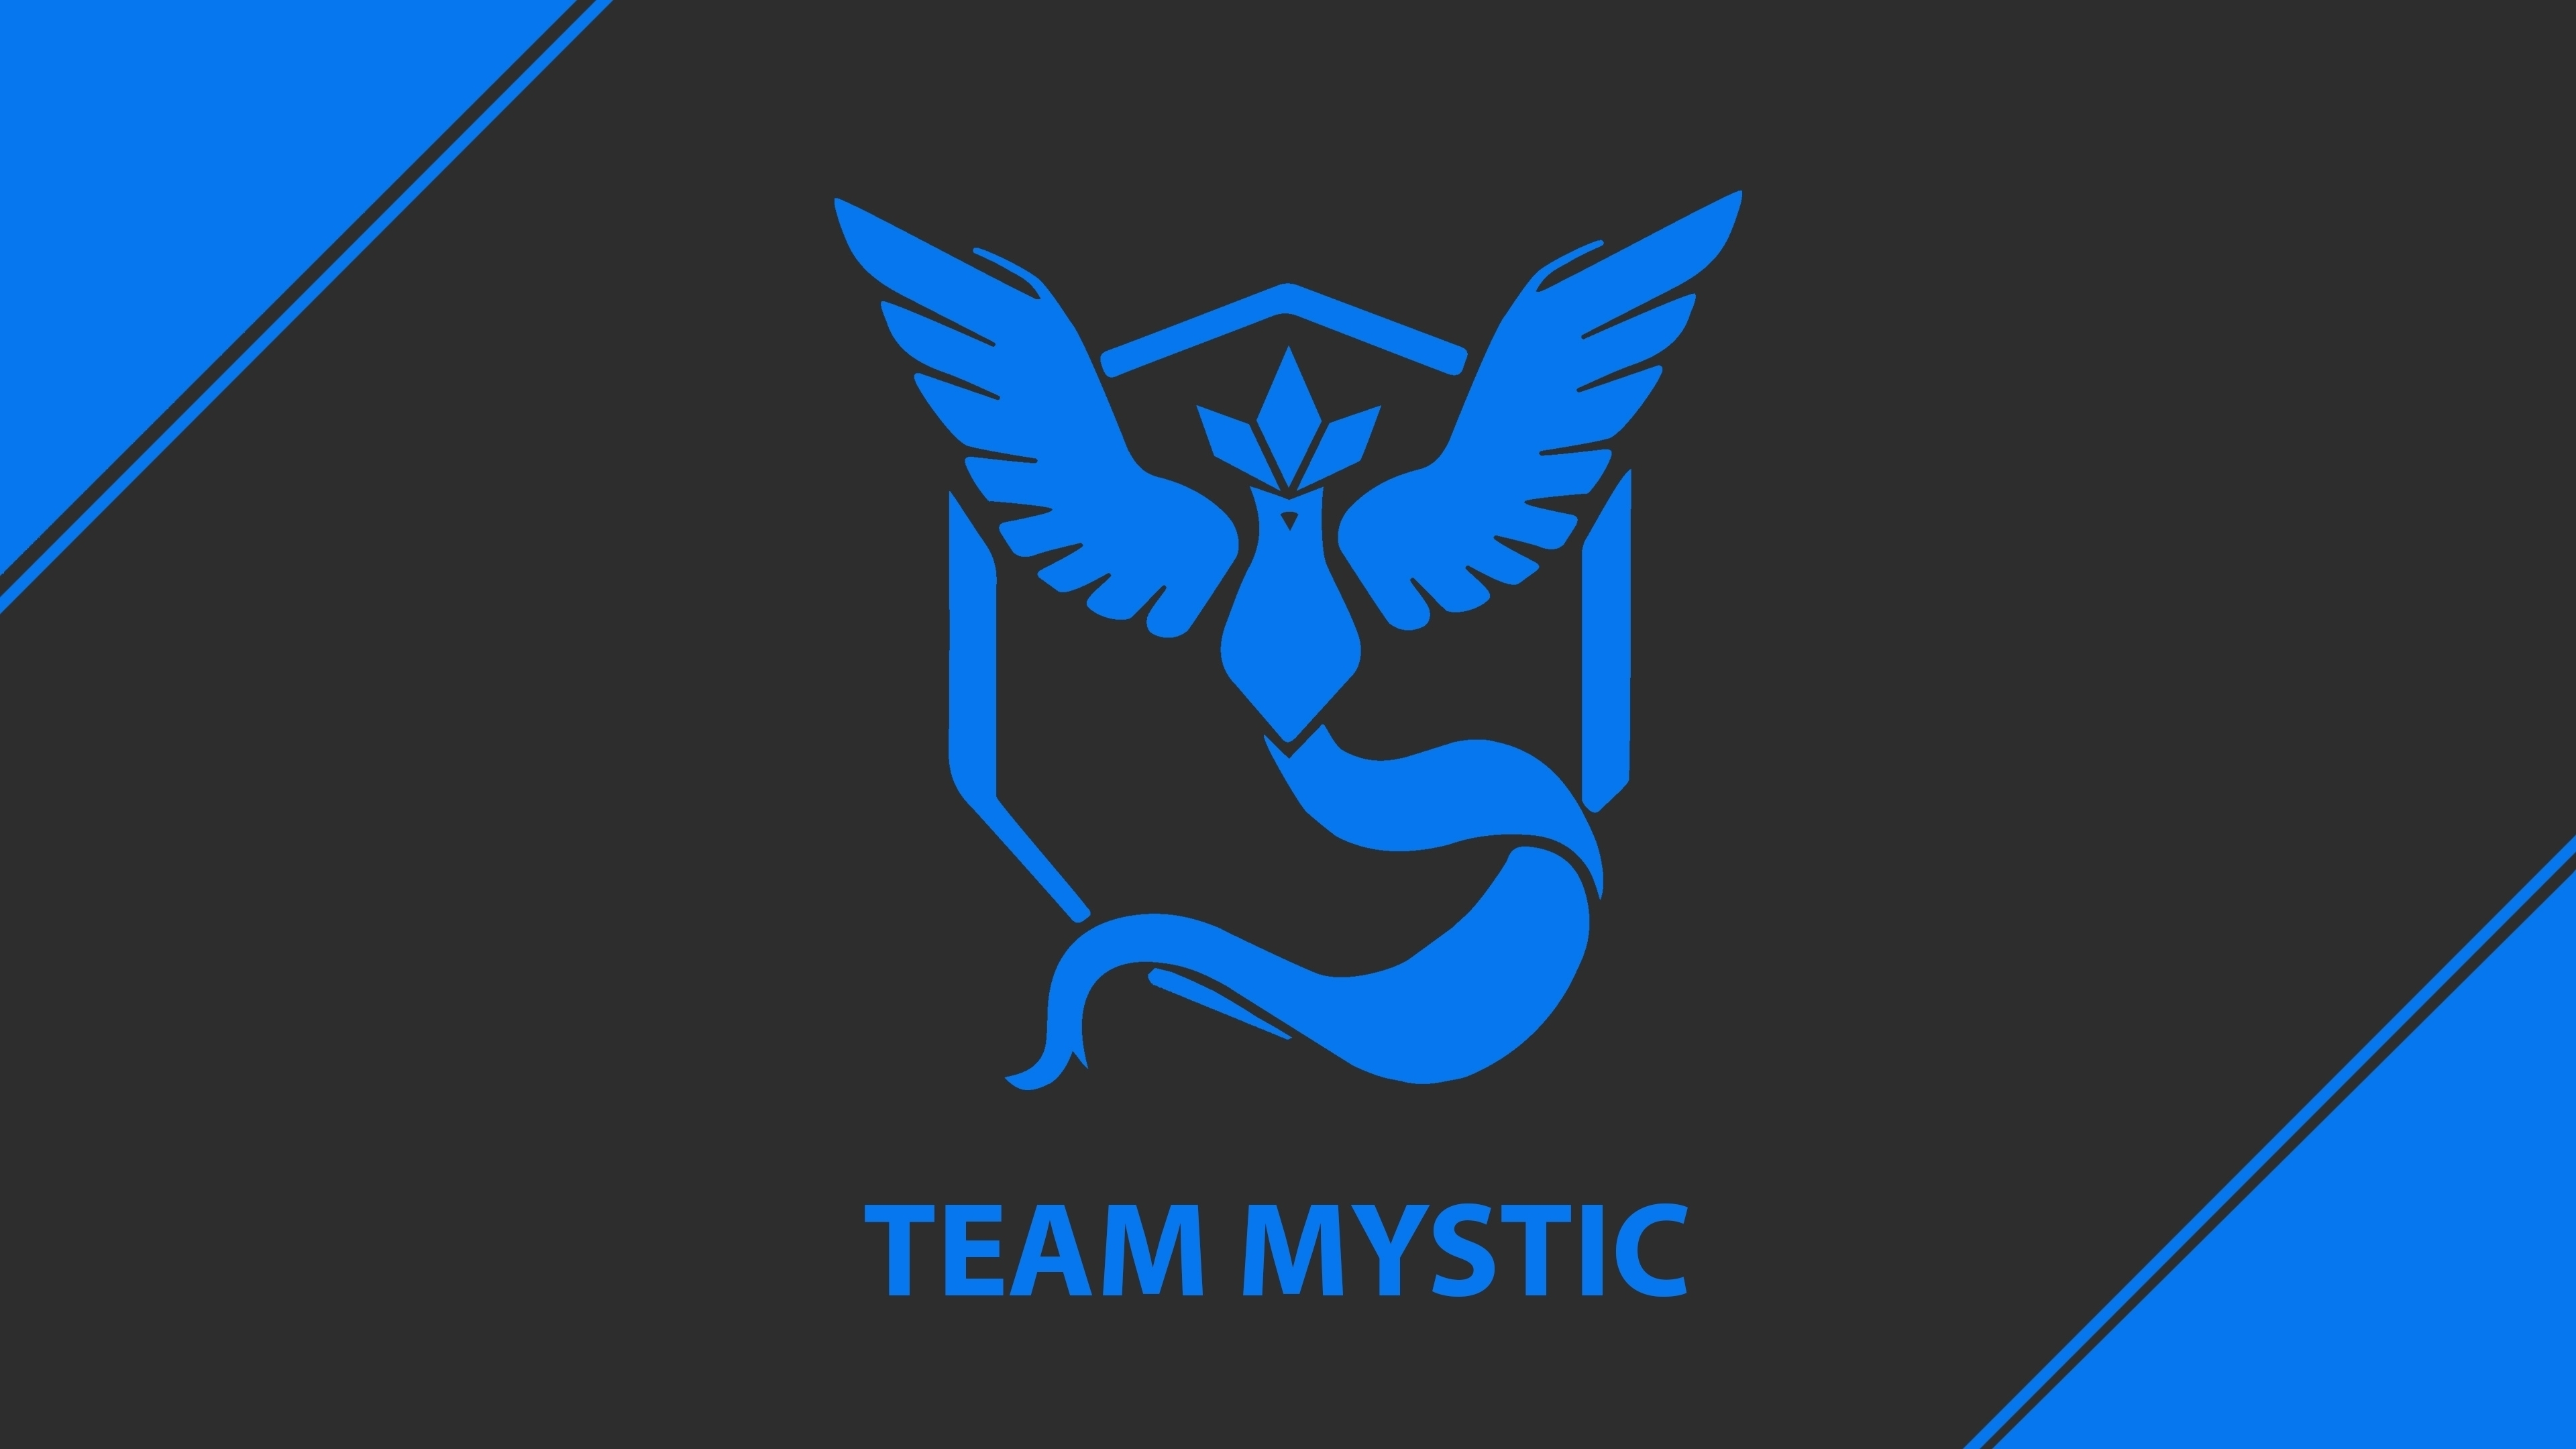 Pokemon Go Team Mystic Team Blue 4K wallpaper